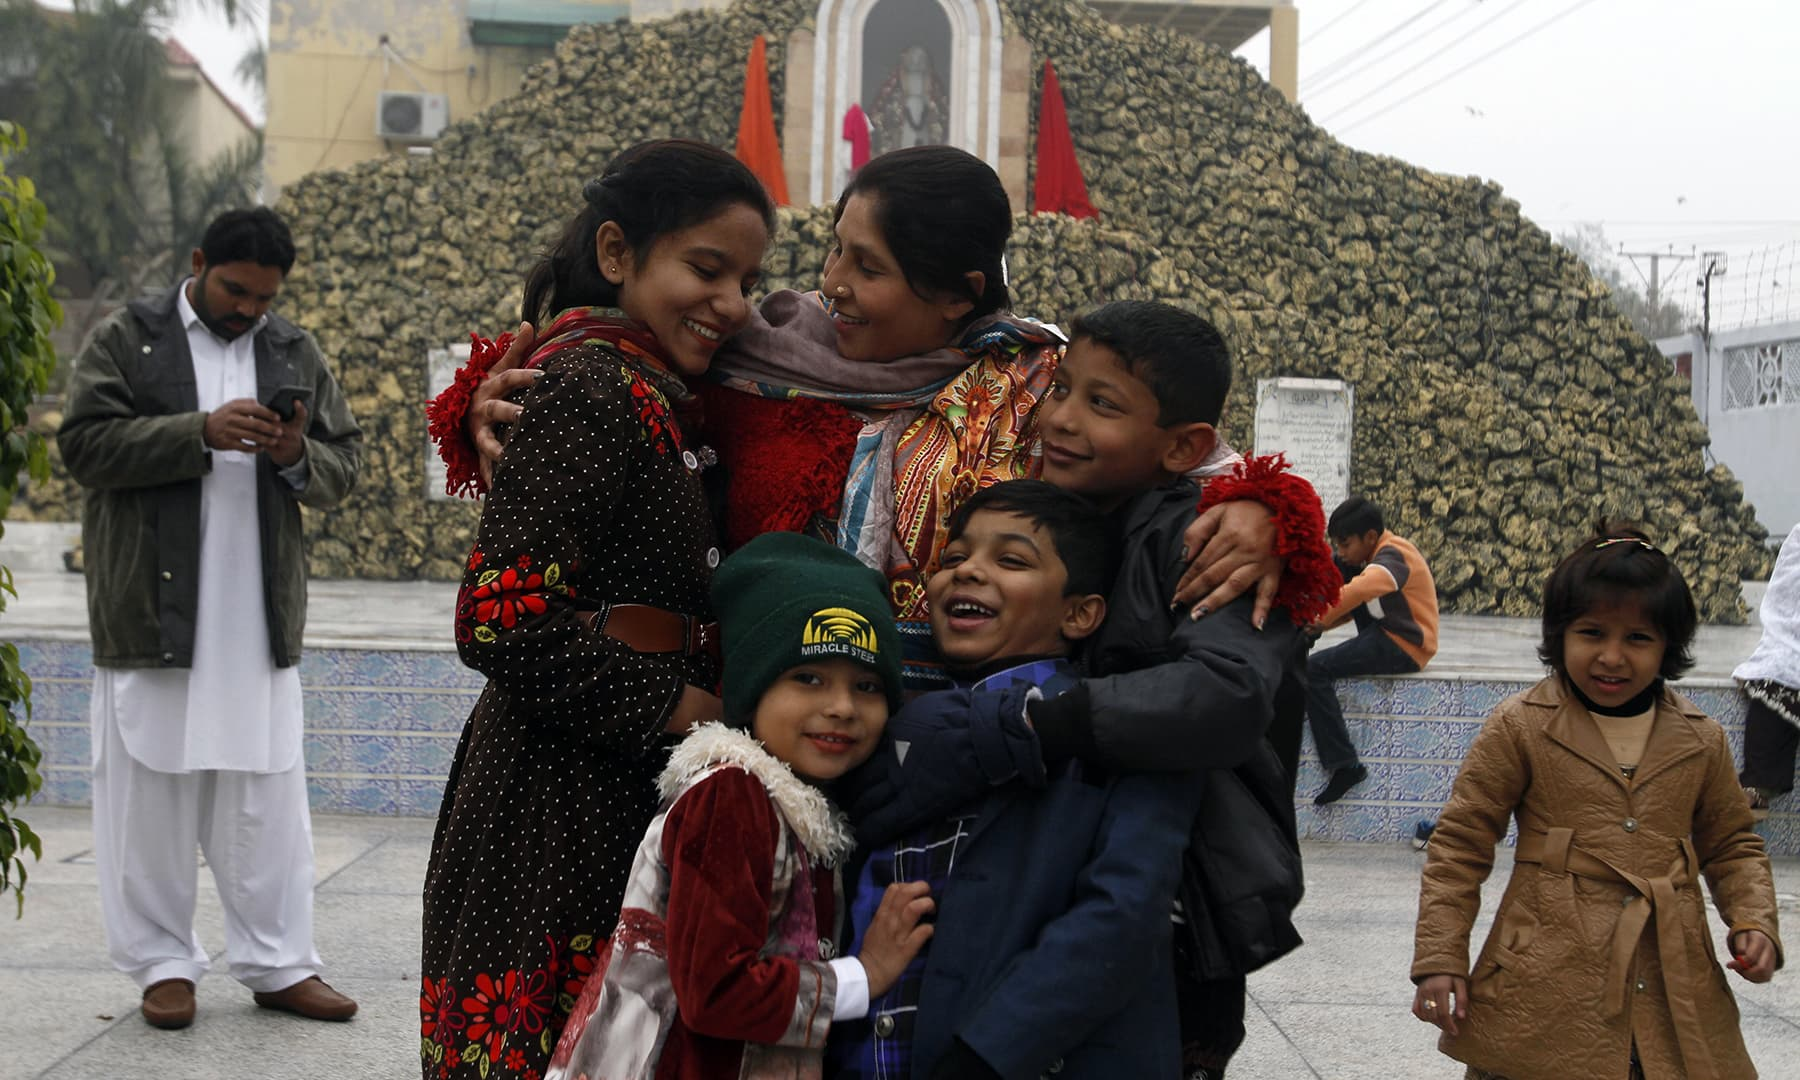 A Christian family greet each other after attending Christmas Mass at a church in Multan on Wednesday. — AP